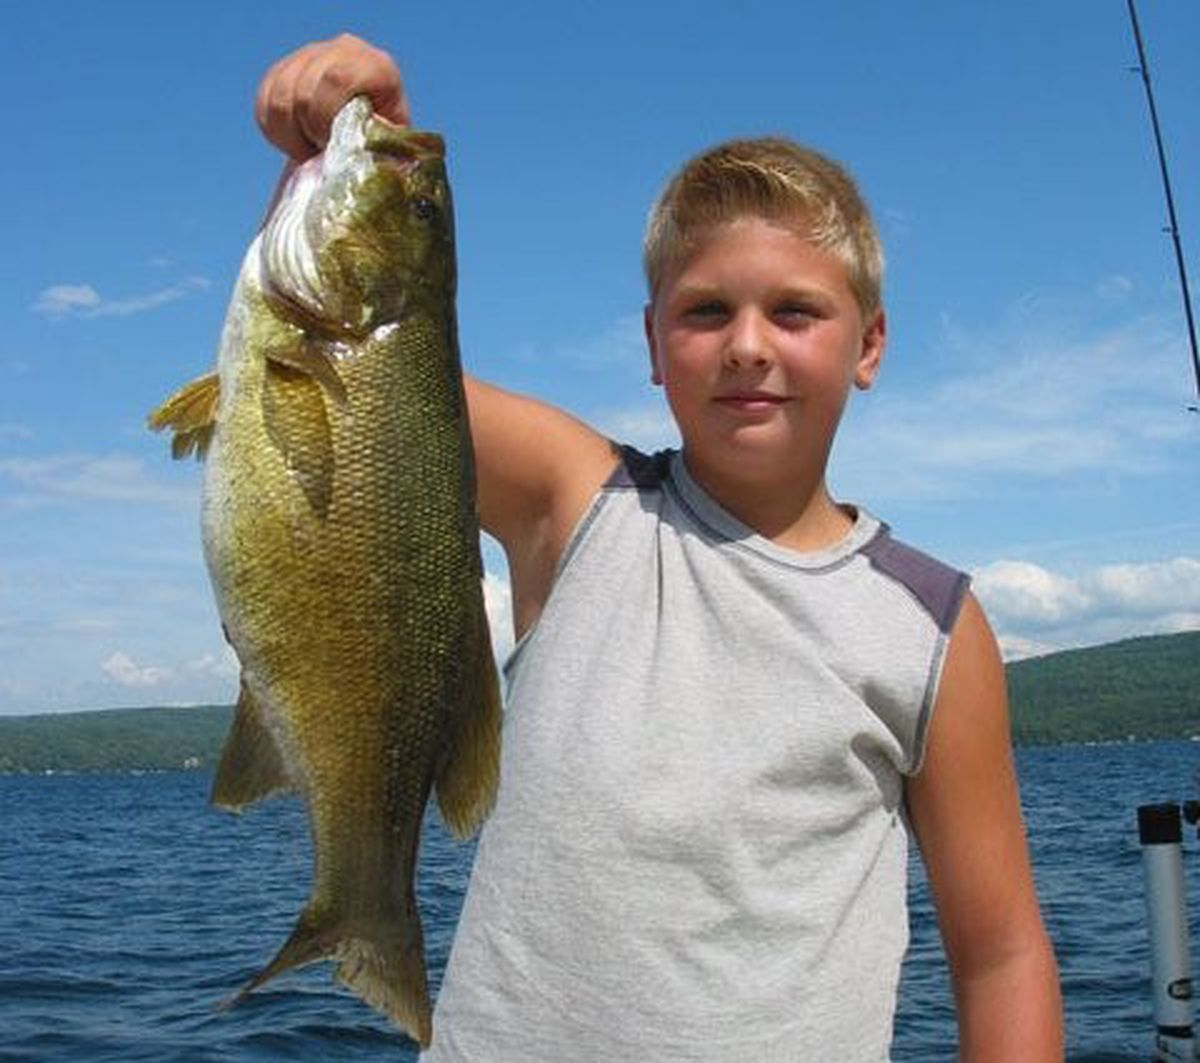 hight resolution of 5 great places for fall fishing in the capital region newyorkupstate com